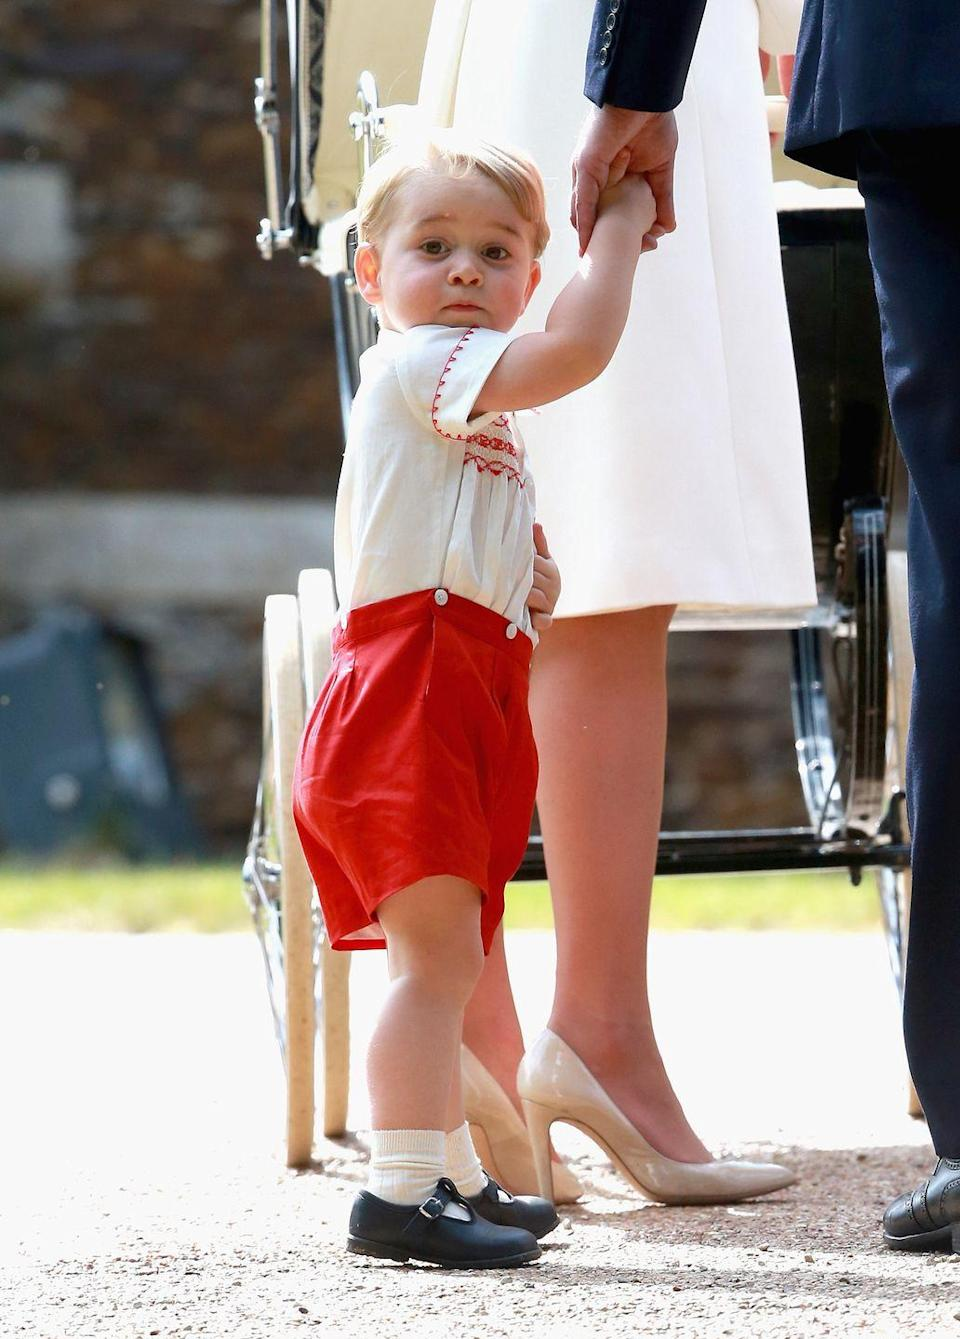 """<p>Although royals are known to have <em>plenty </em>of private nicknames for one another (Prince Philip refers to the Queen <a href=""""https://www.msn.com/en-us/lifestyle/royals/prince-philip-s-nickname-for-wife-queen-elizabeth-is-actually-baffling/ar-AACFDAr"""" rel=""""nofollow noopener"""" target=""""_blank"""" data-ylk=""""slk:as Cabbage"""" class=""""link rapid-noclick-resp"""">as Cabbage</a>), it's considered improper for a royal to be addressed by anything other than their full name formally, which is <a href=""""https://www.goodhousekeeping.com/life/g4817/odd-royal-family-rules/?slide=30"""" rel=""""nofollow noopener"""" target=""""_blank"""" data-ylk=""""slk:why Kate Middleton now goes by Catherine"""" class=""""link rapid-noclick-resp"""">why Kate Middleton now goes by Catherine</a>. </p>"""